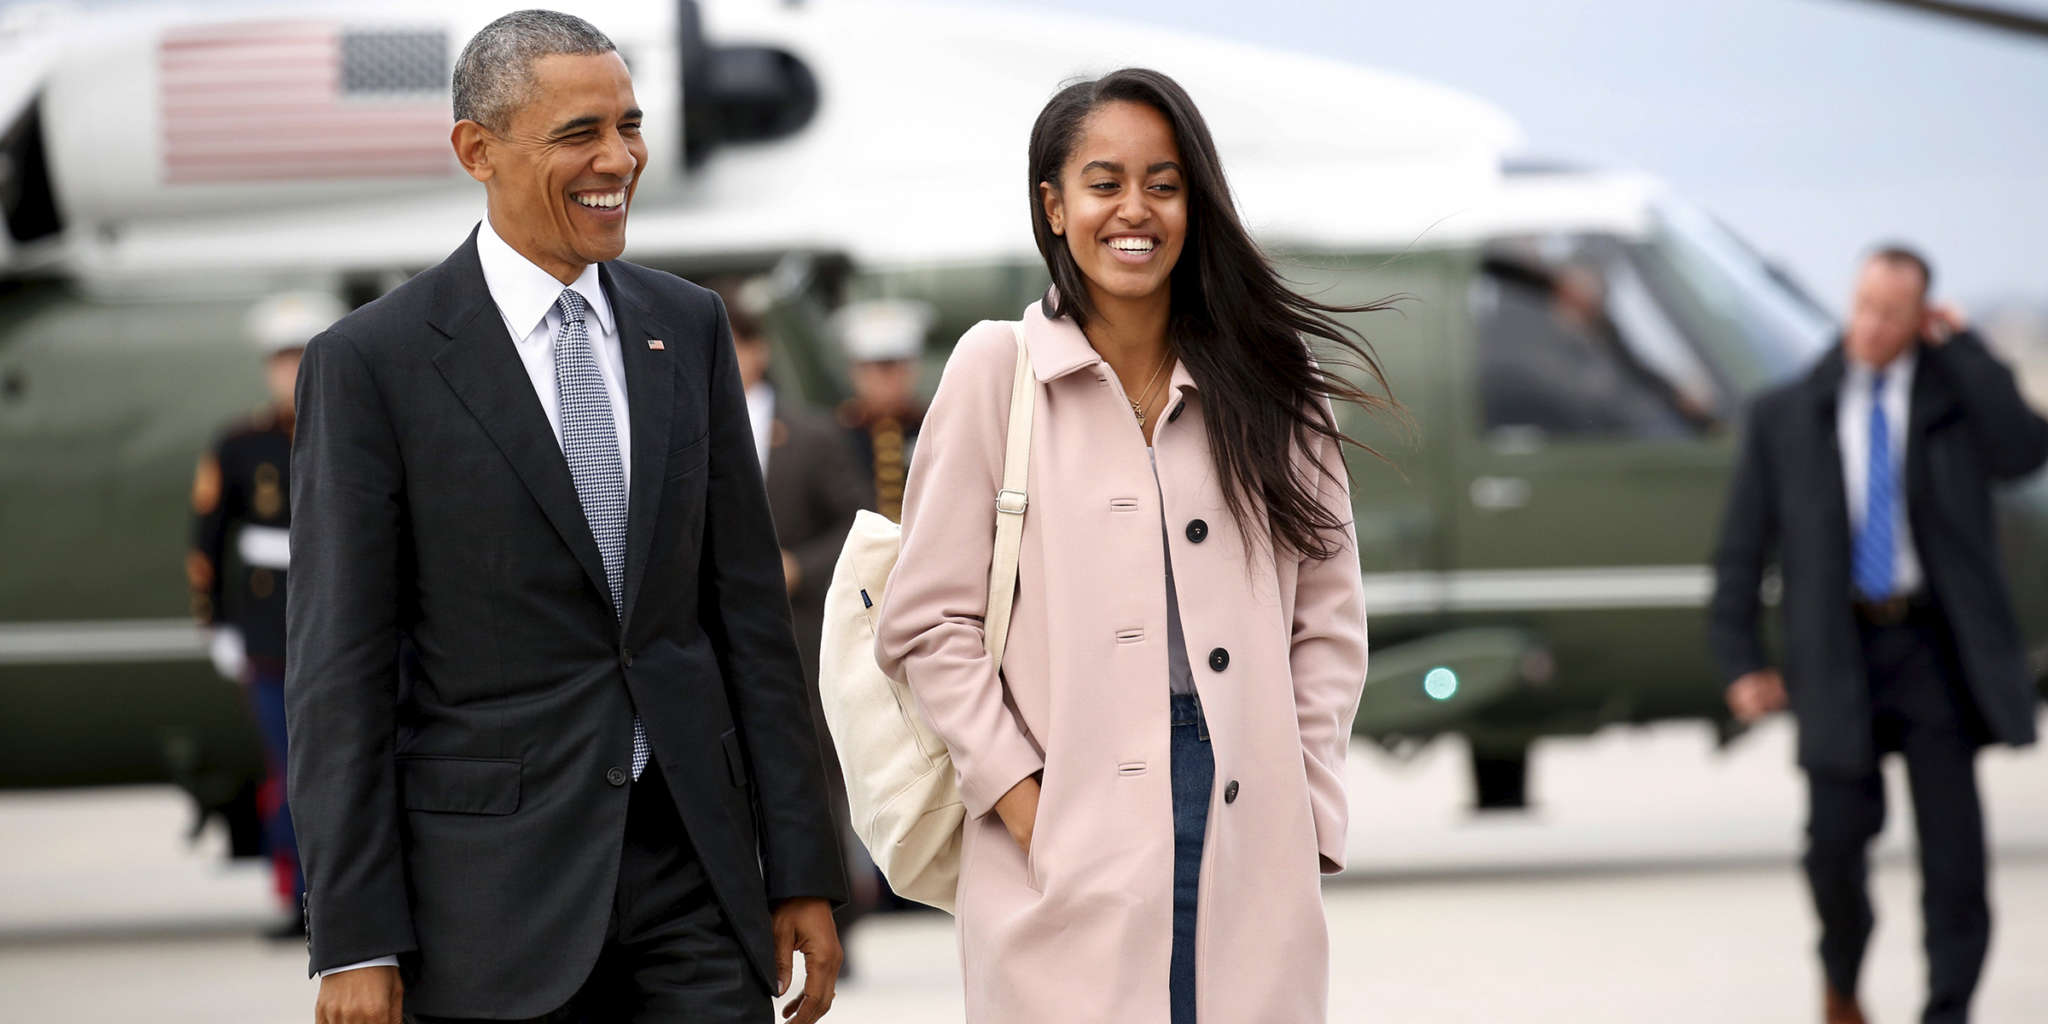 Barack Obama Reveals Malia's Boyfriend Spent Quarantine With Them – Here's Why He Let Him Stay Over!